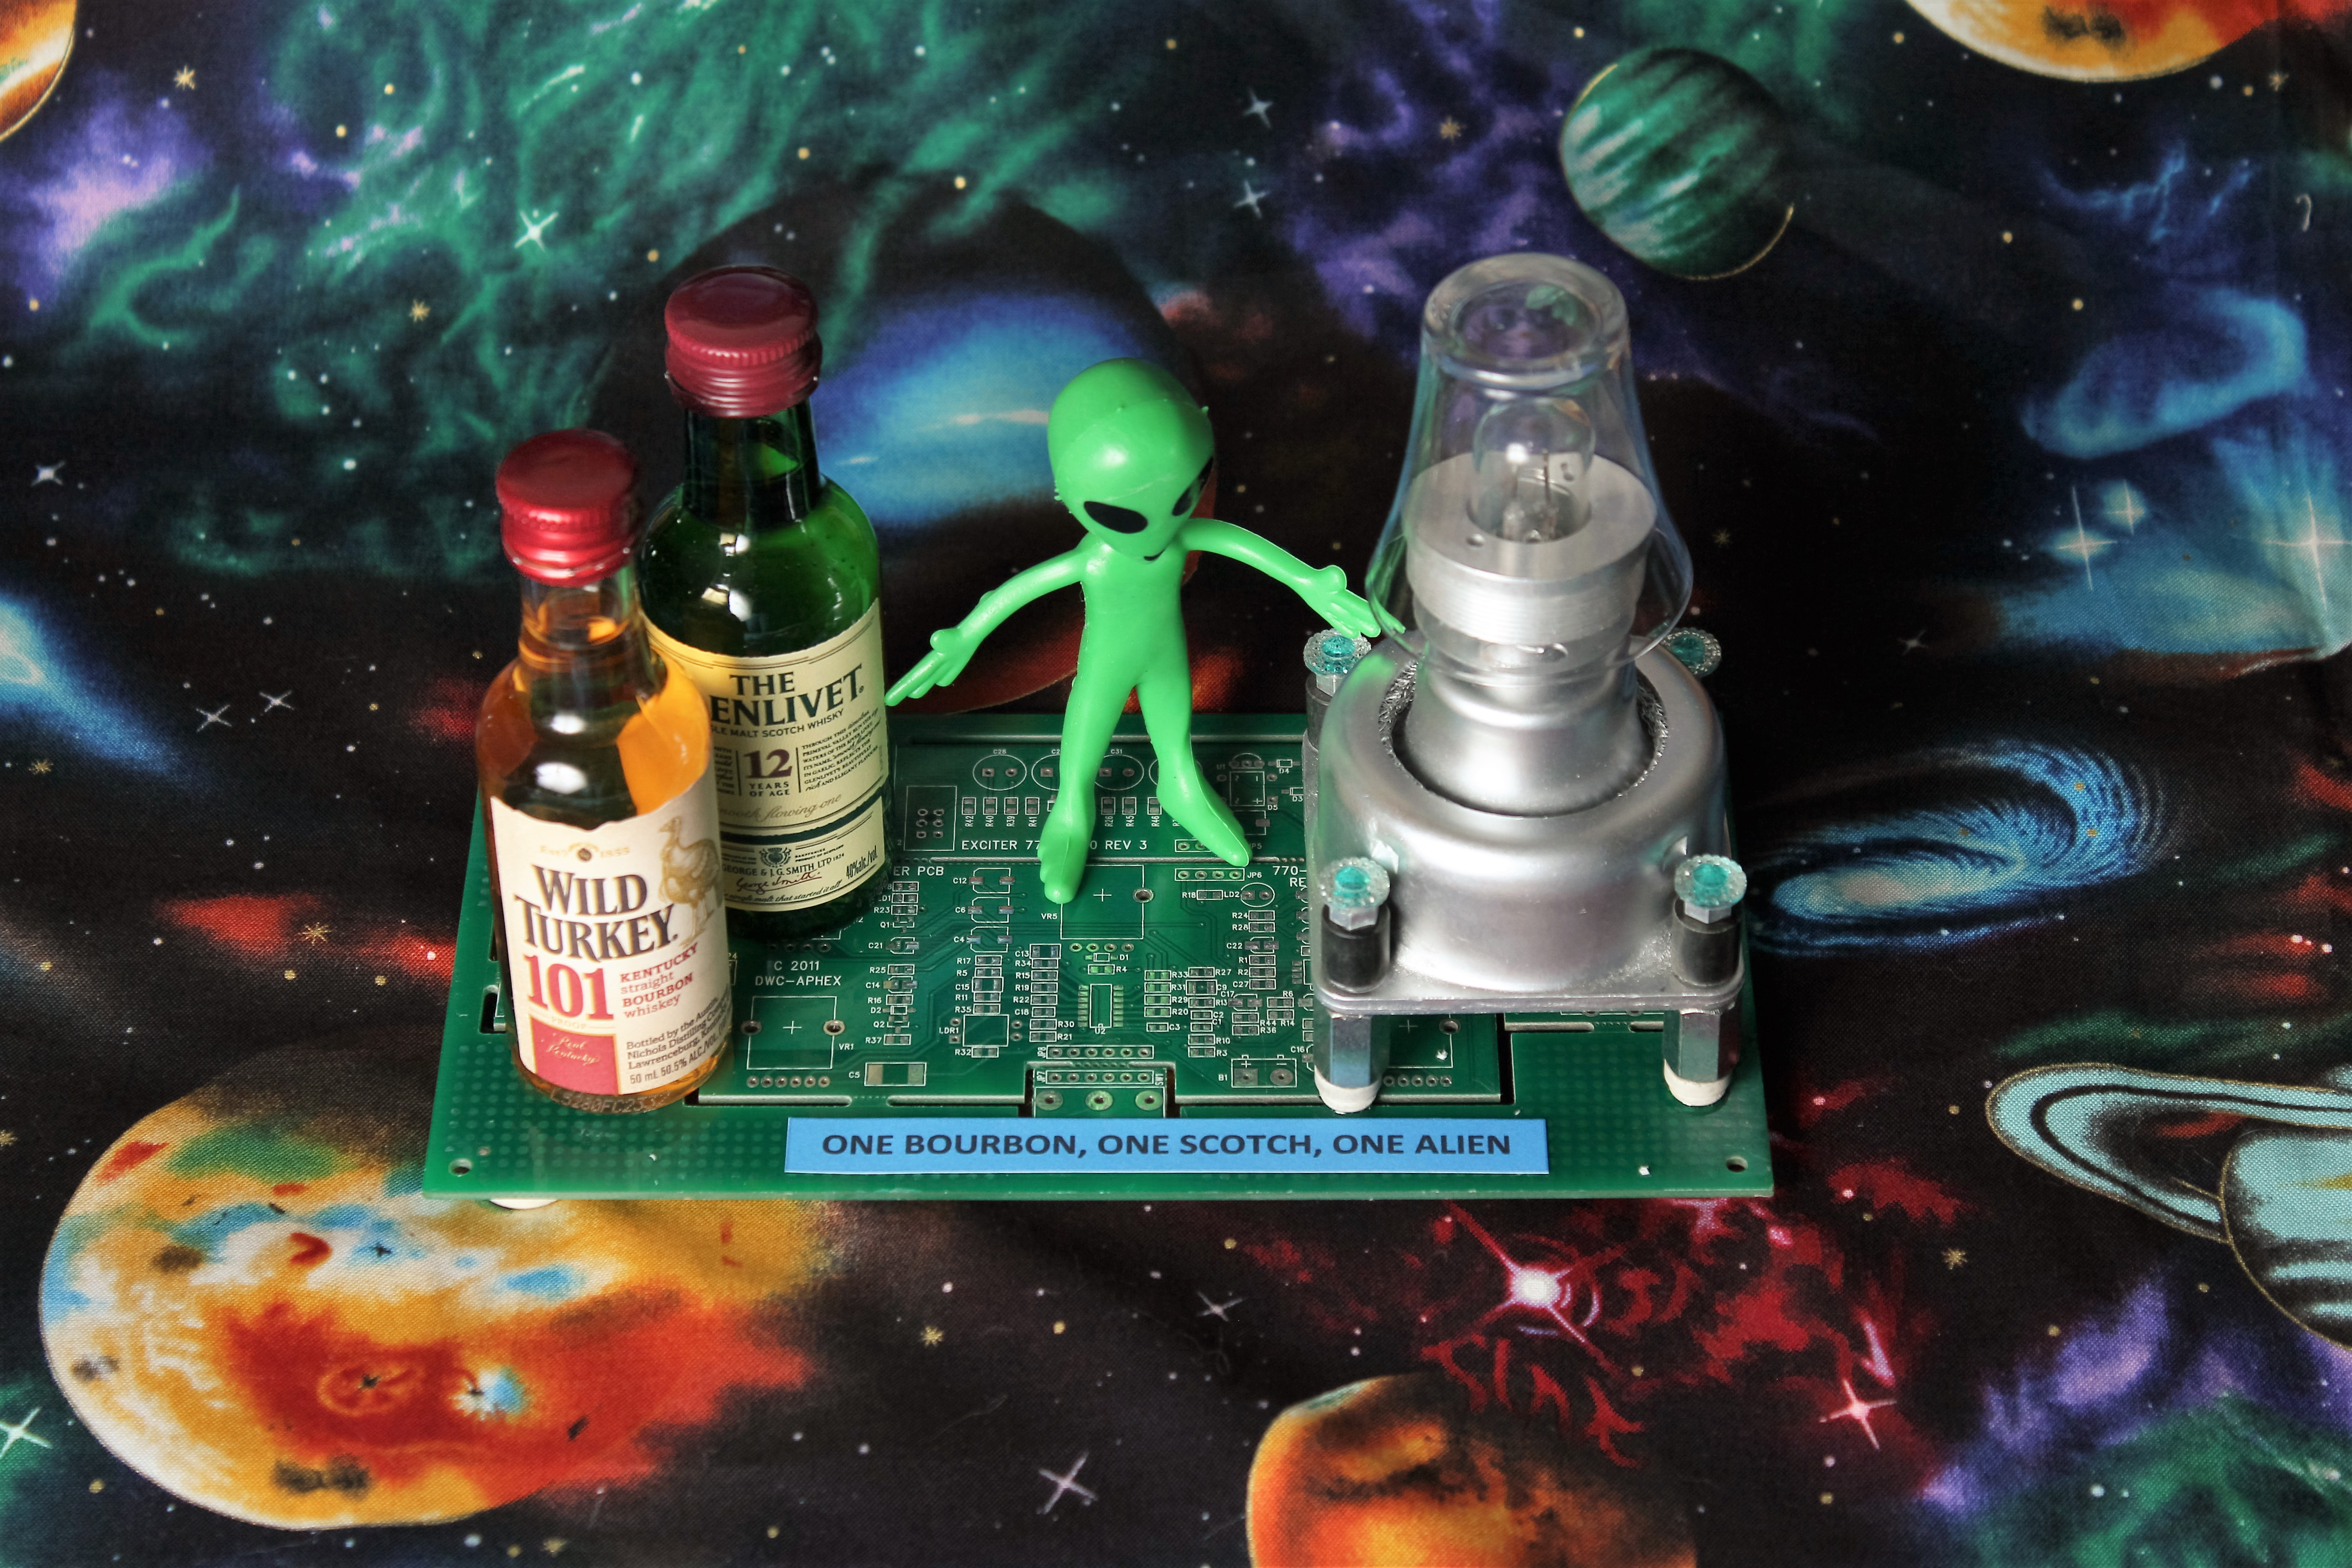 167 One Bourbon, One Scotch, One Alien 3